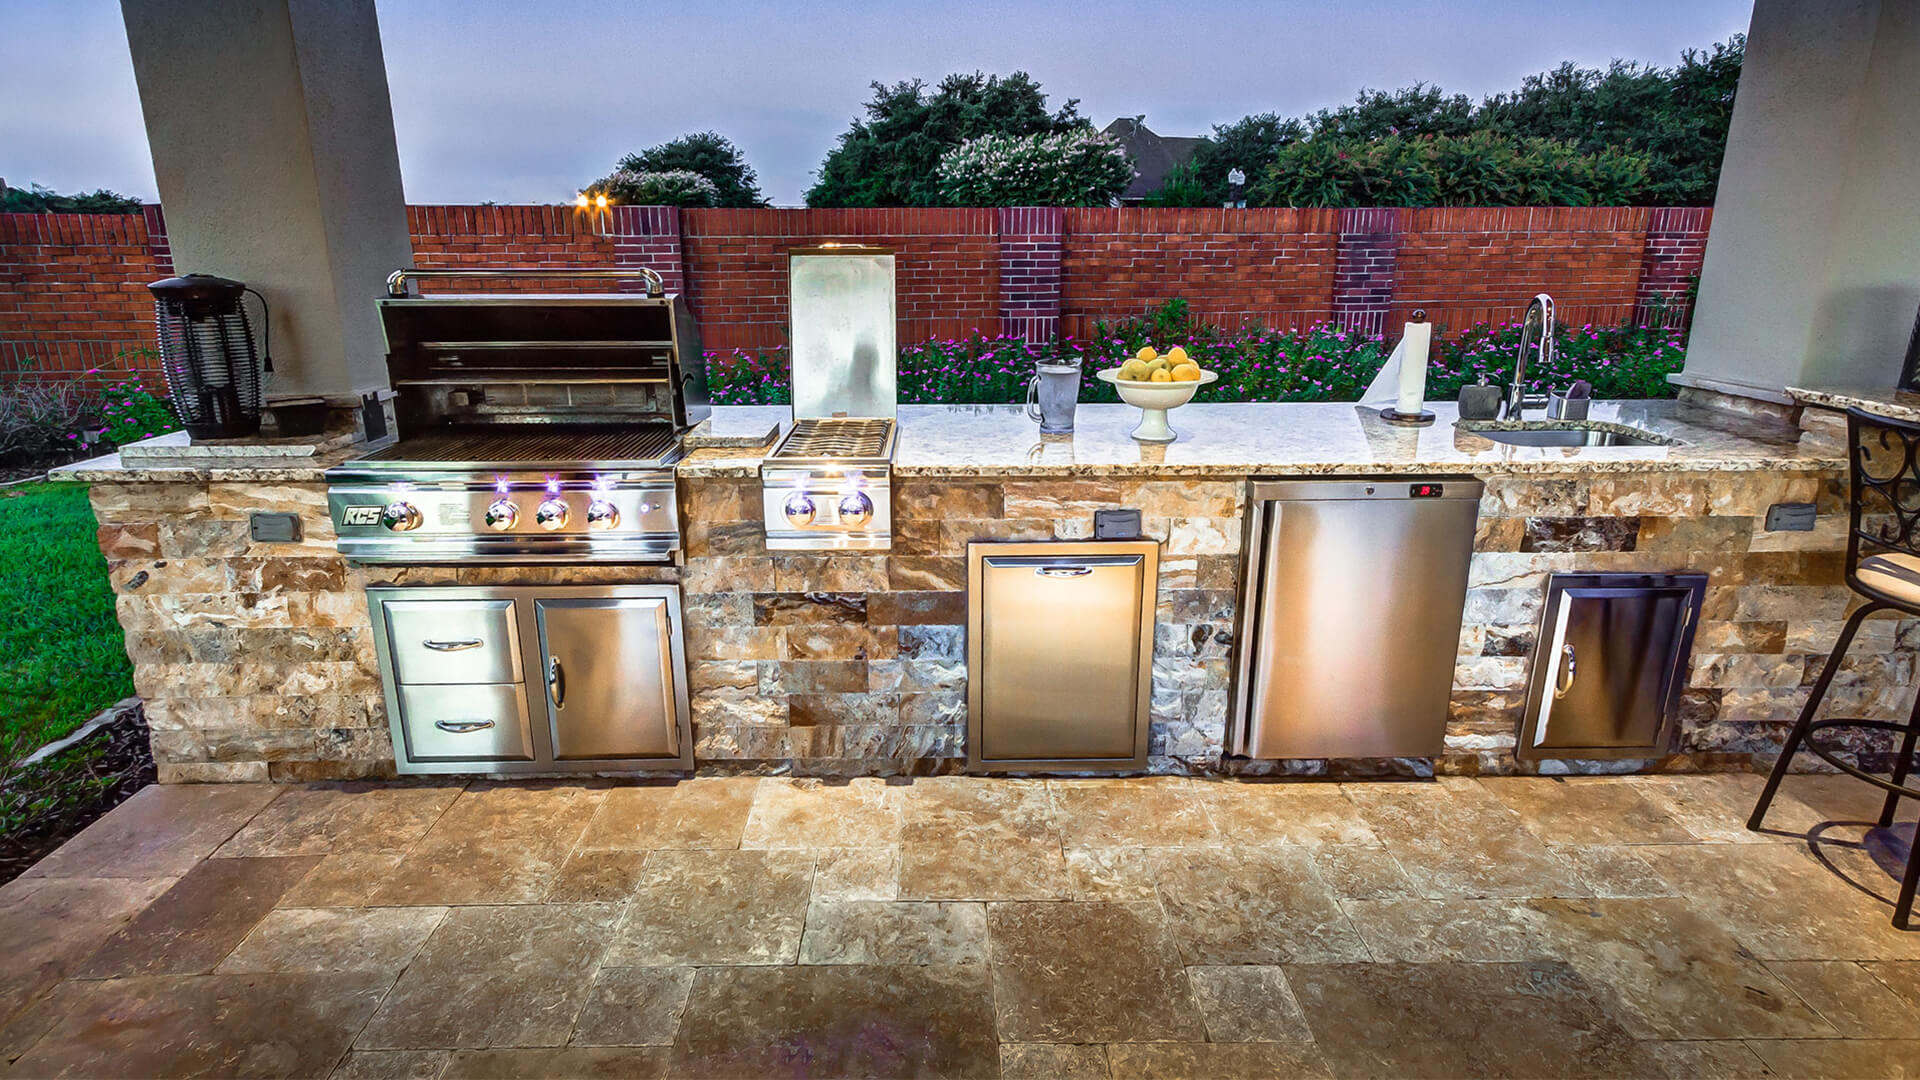 Custom Outdoor Kitchen and Cabana - Appliances View by Creekstone Outdoor Living in Houston Texas